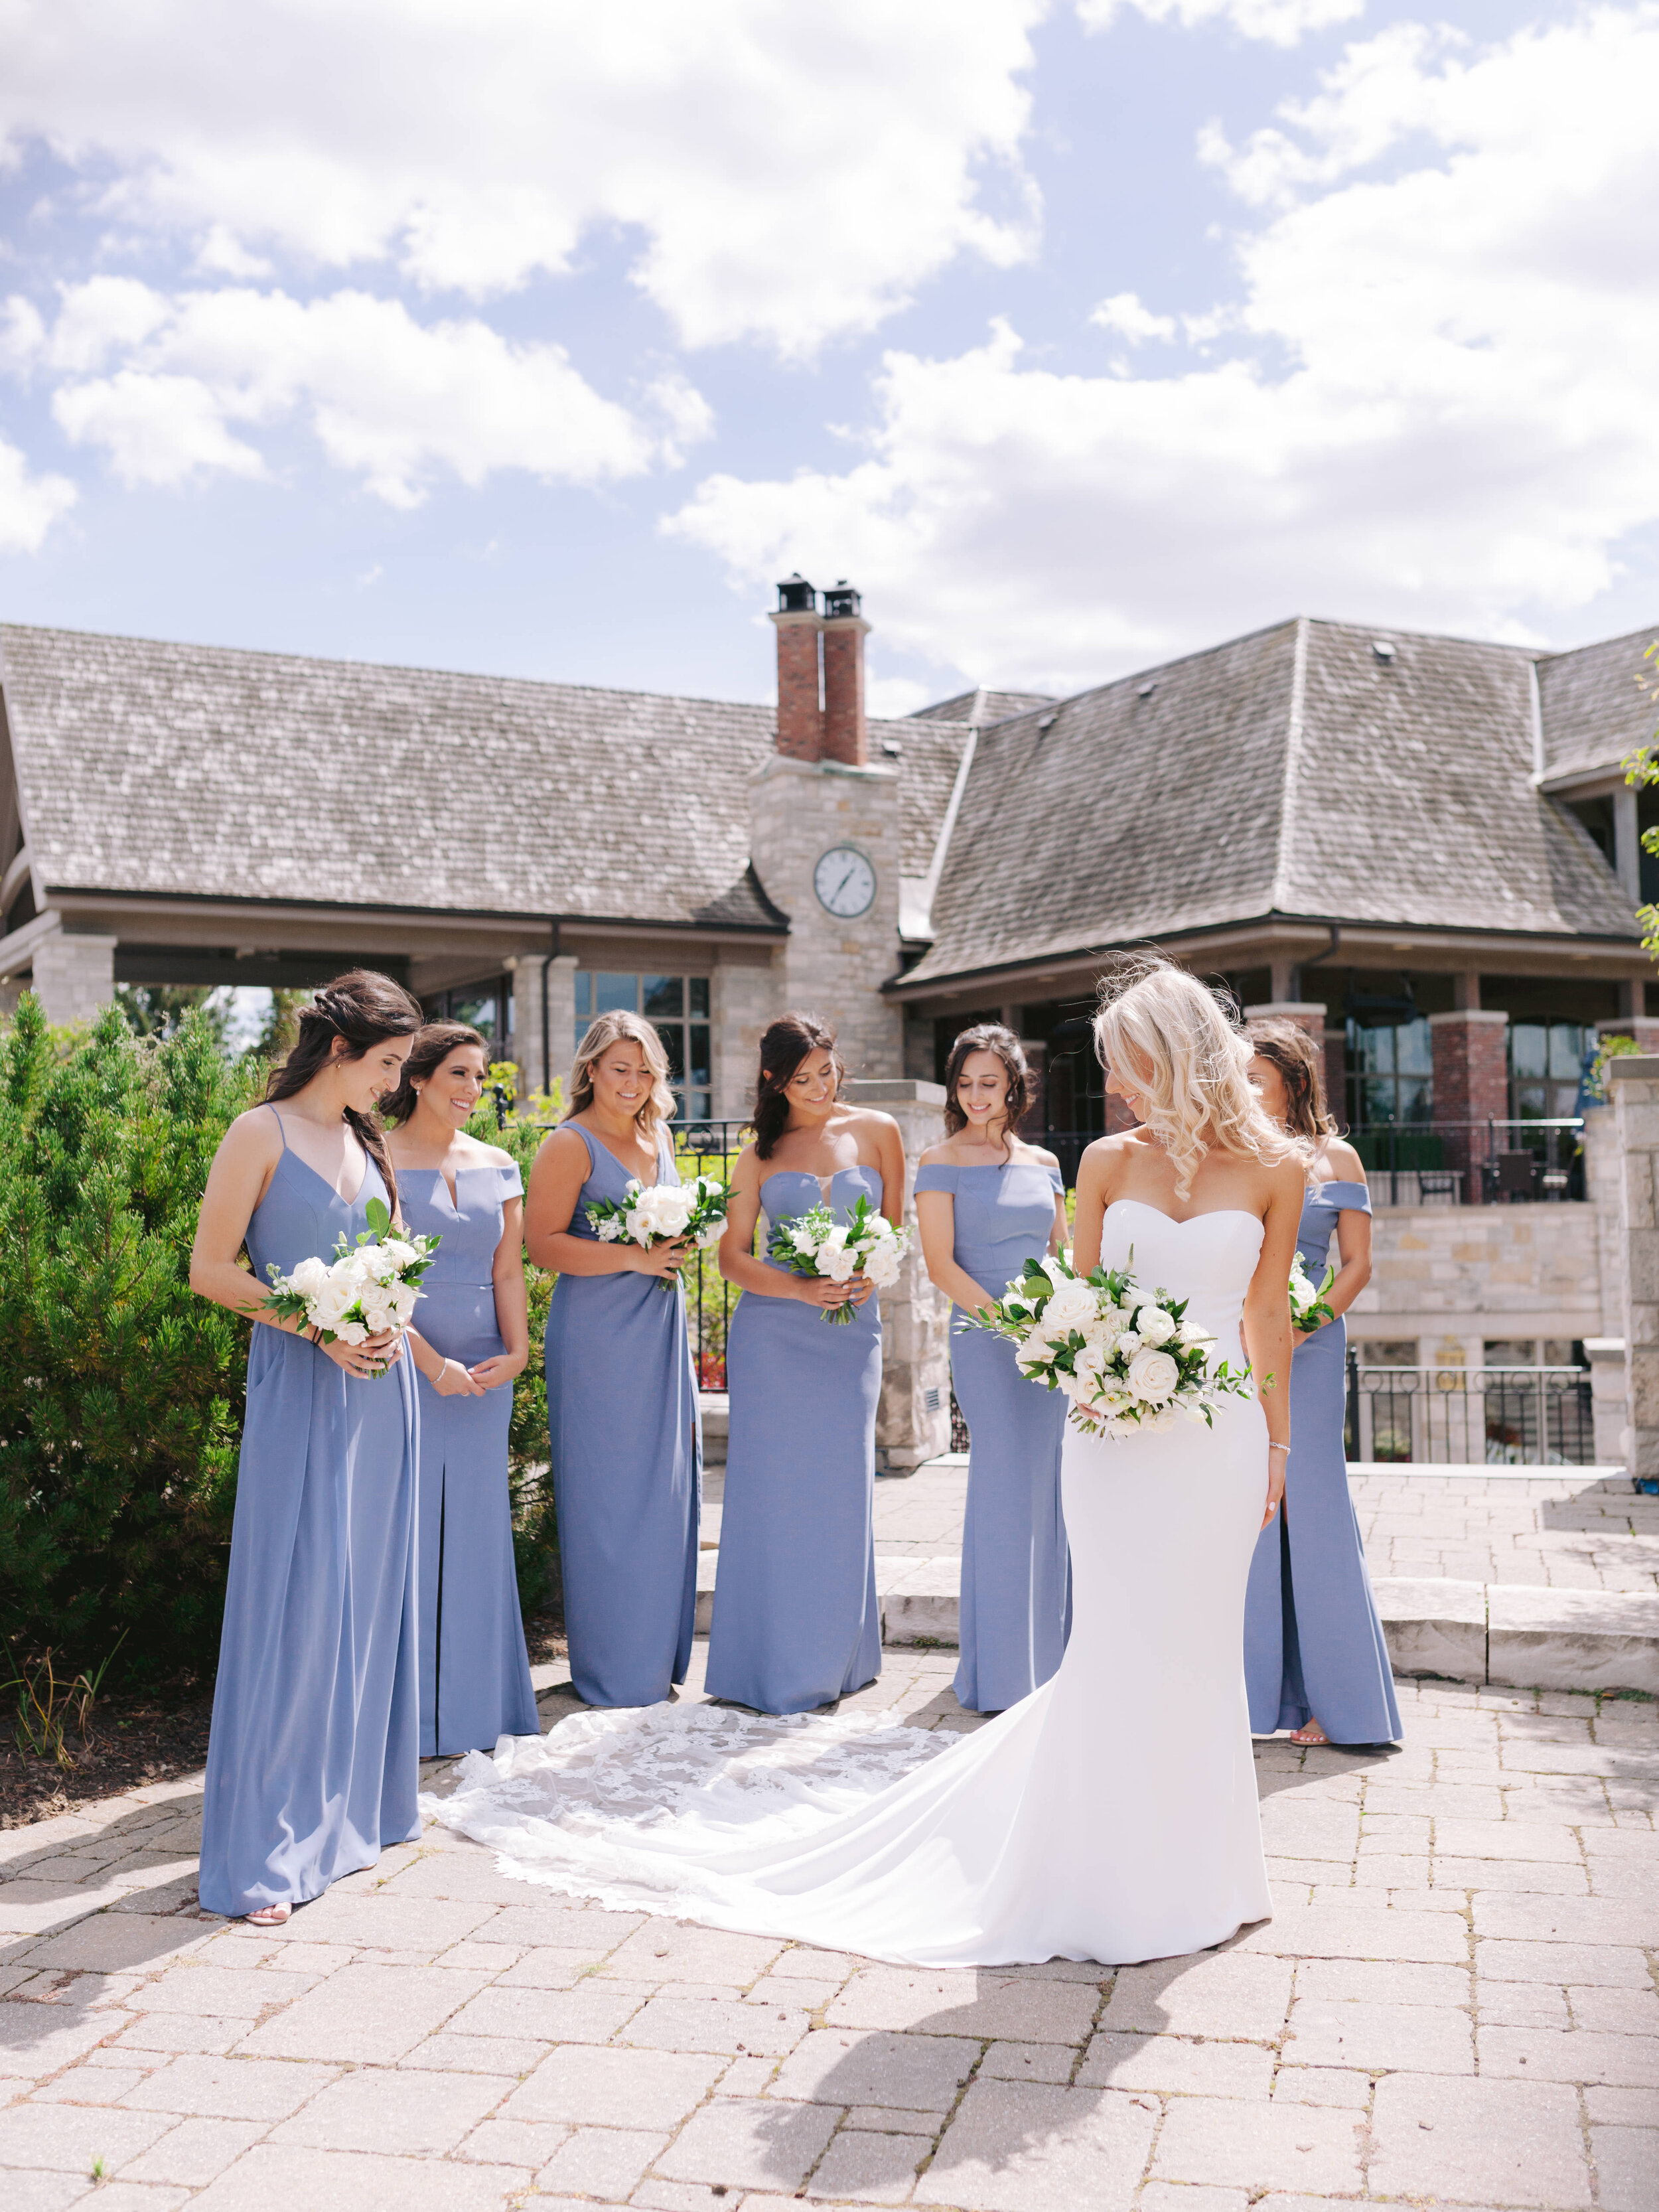 First Look_Bridal Party Portraits (111 of 234).JPG